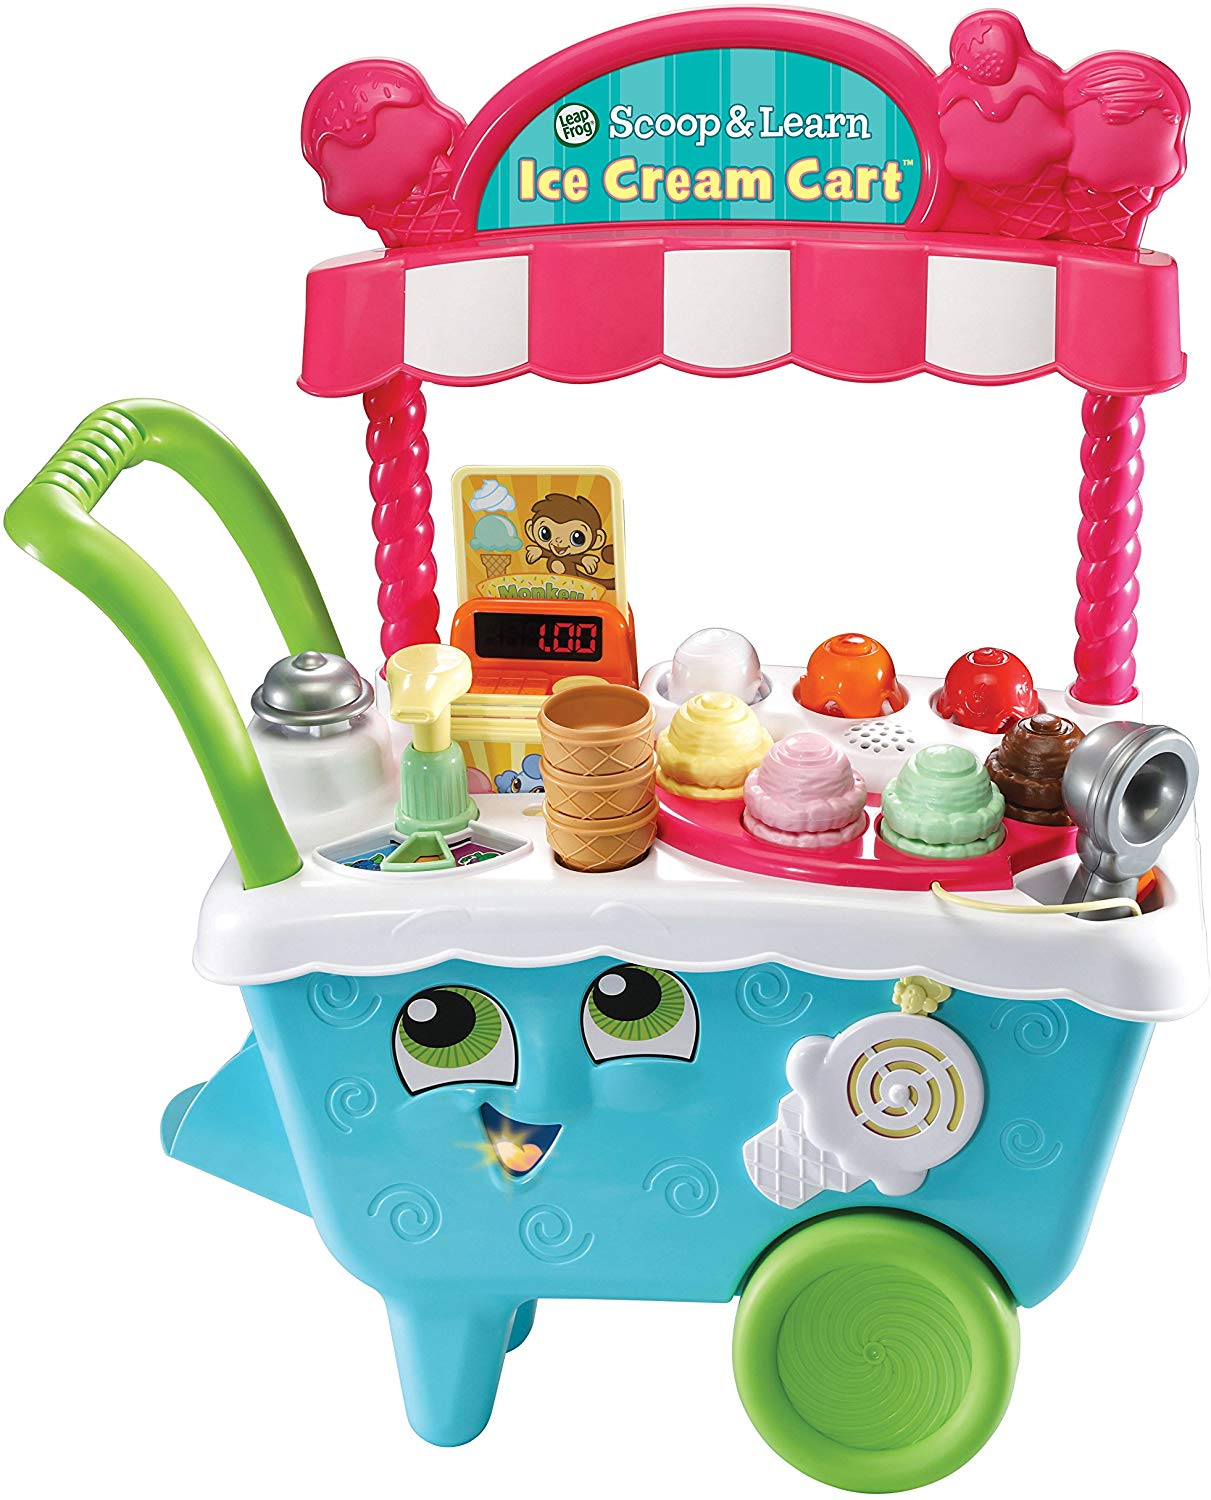 Train your child for business success using the LeapFrog Ice Cream Cart 🍦🧠